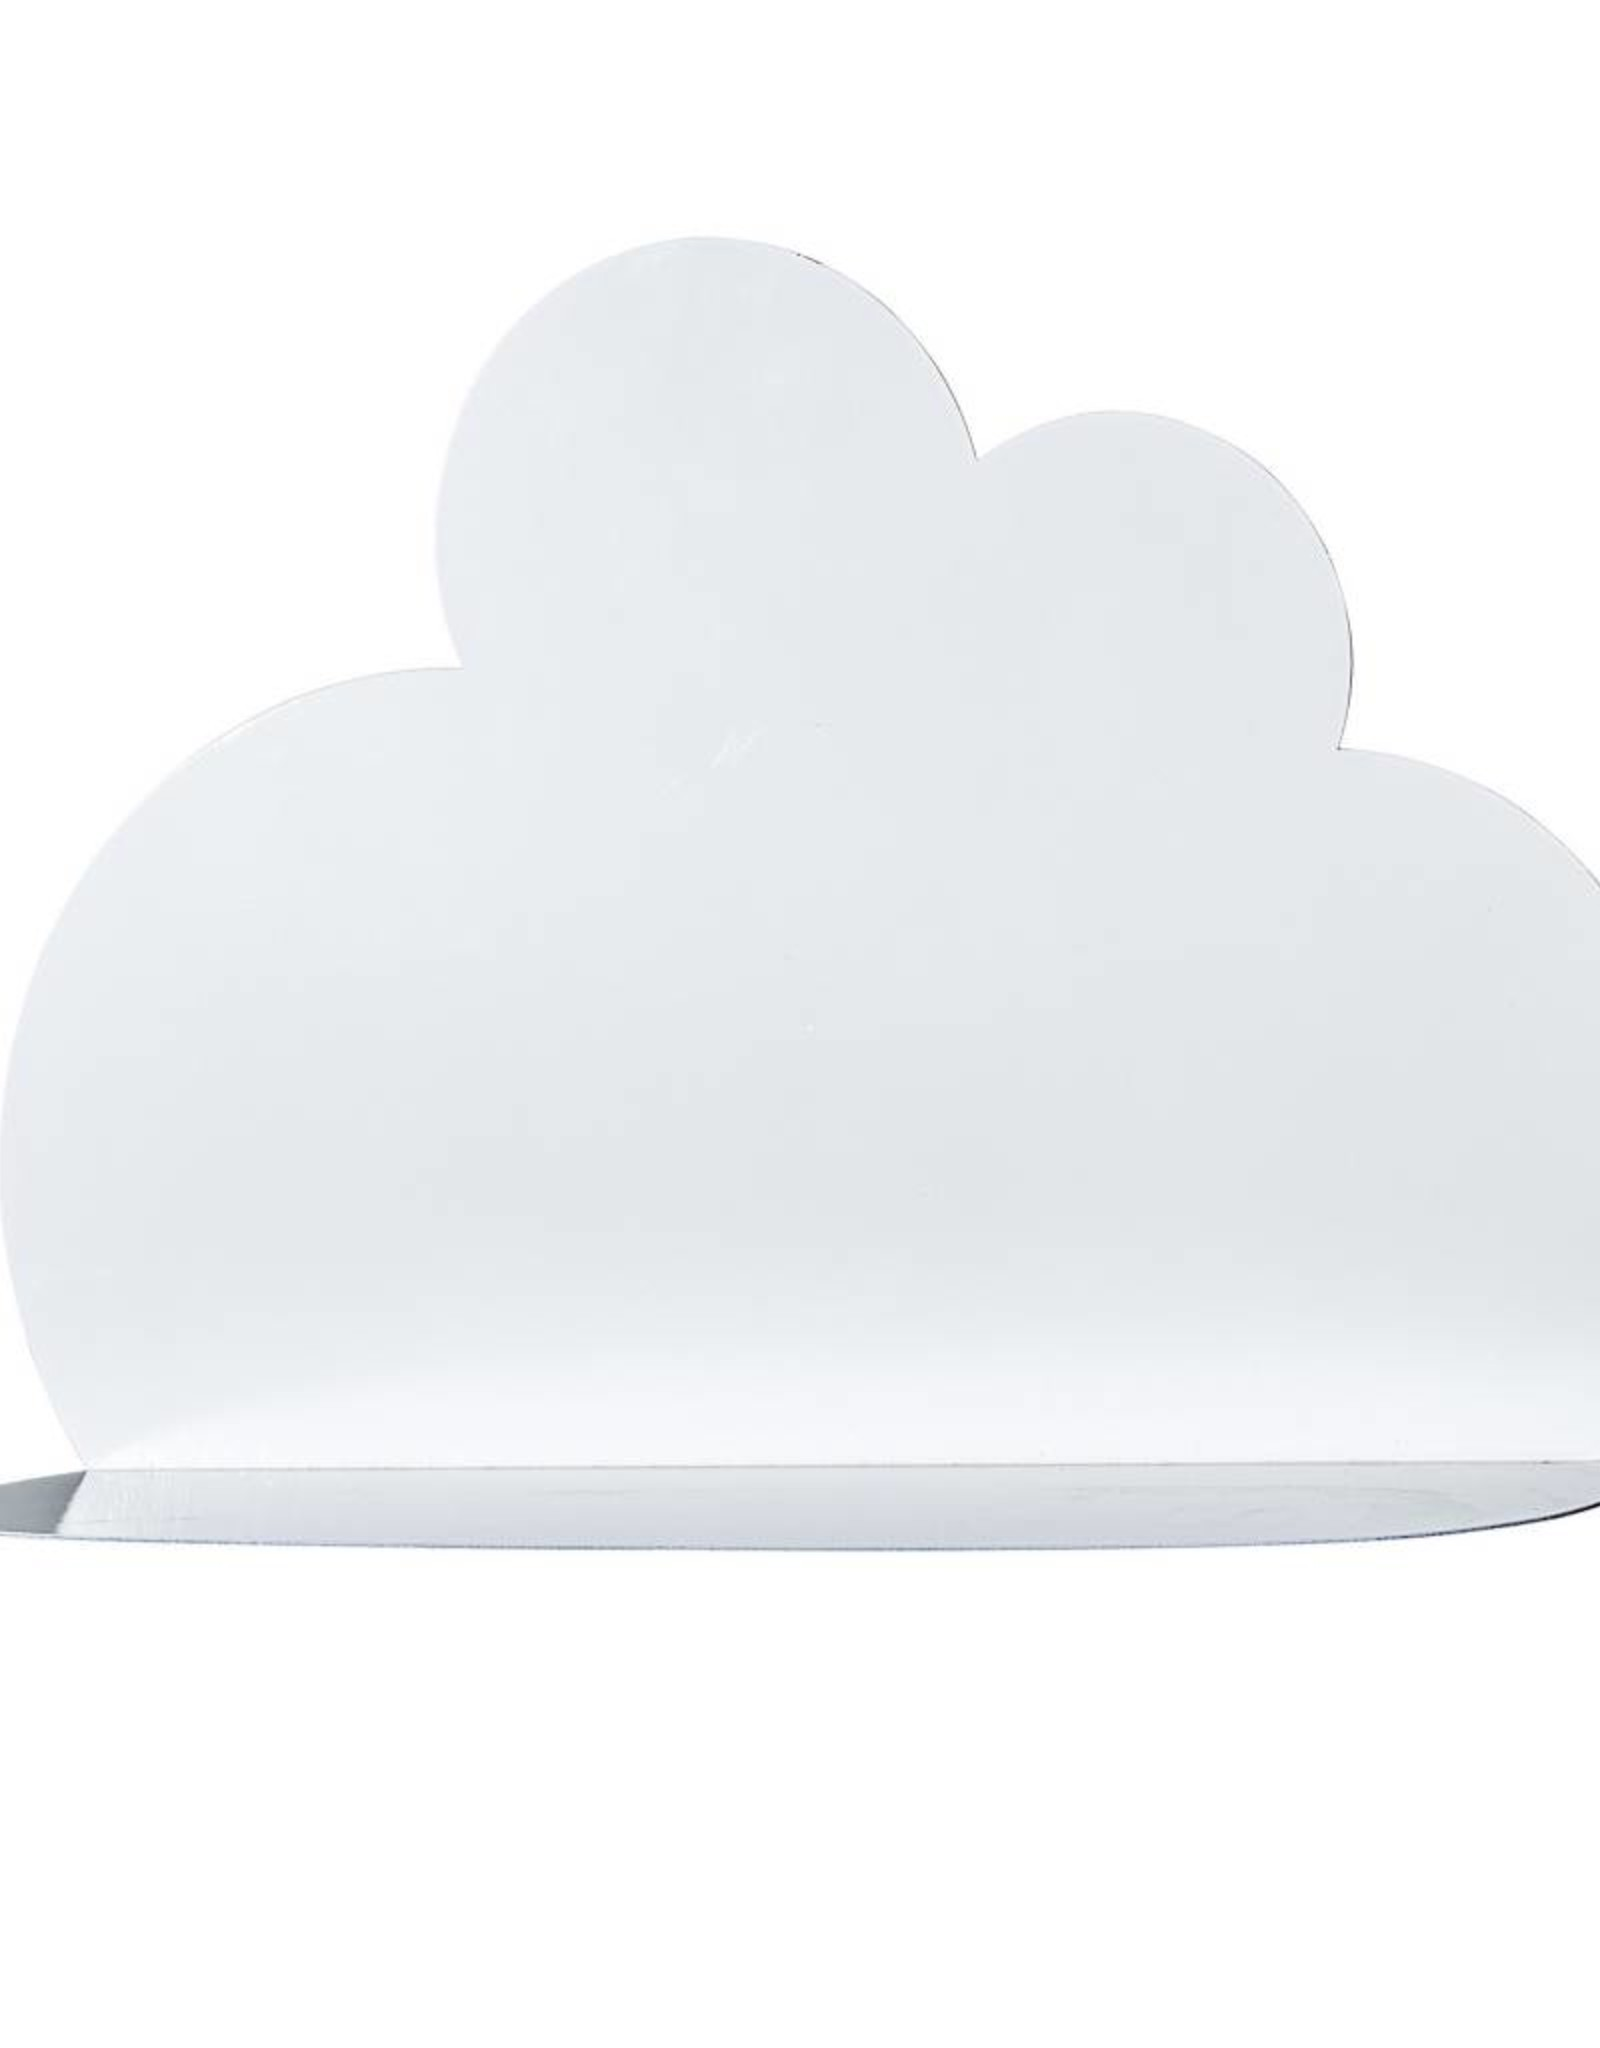 Metal Cloud Shaped Shelf - White